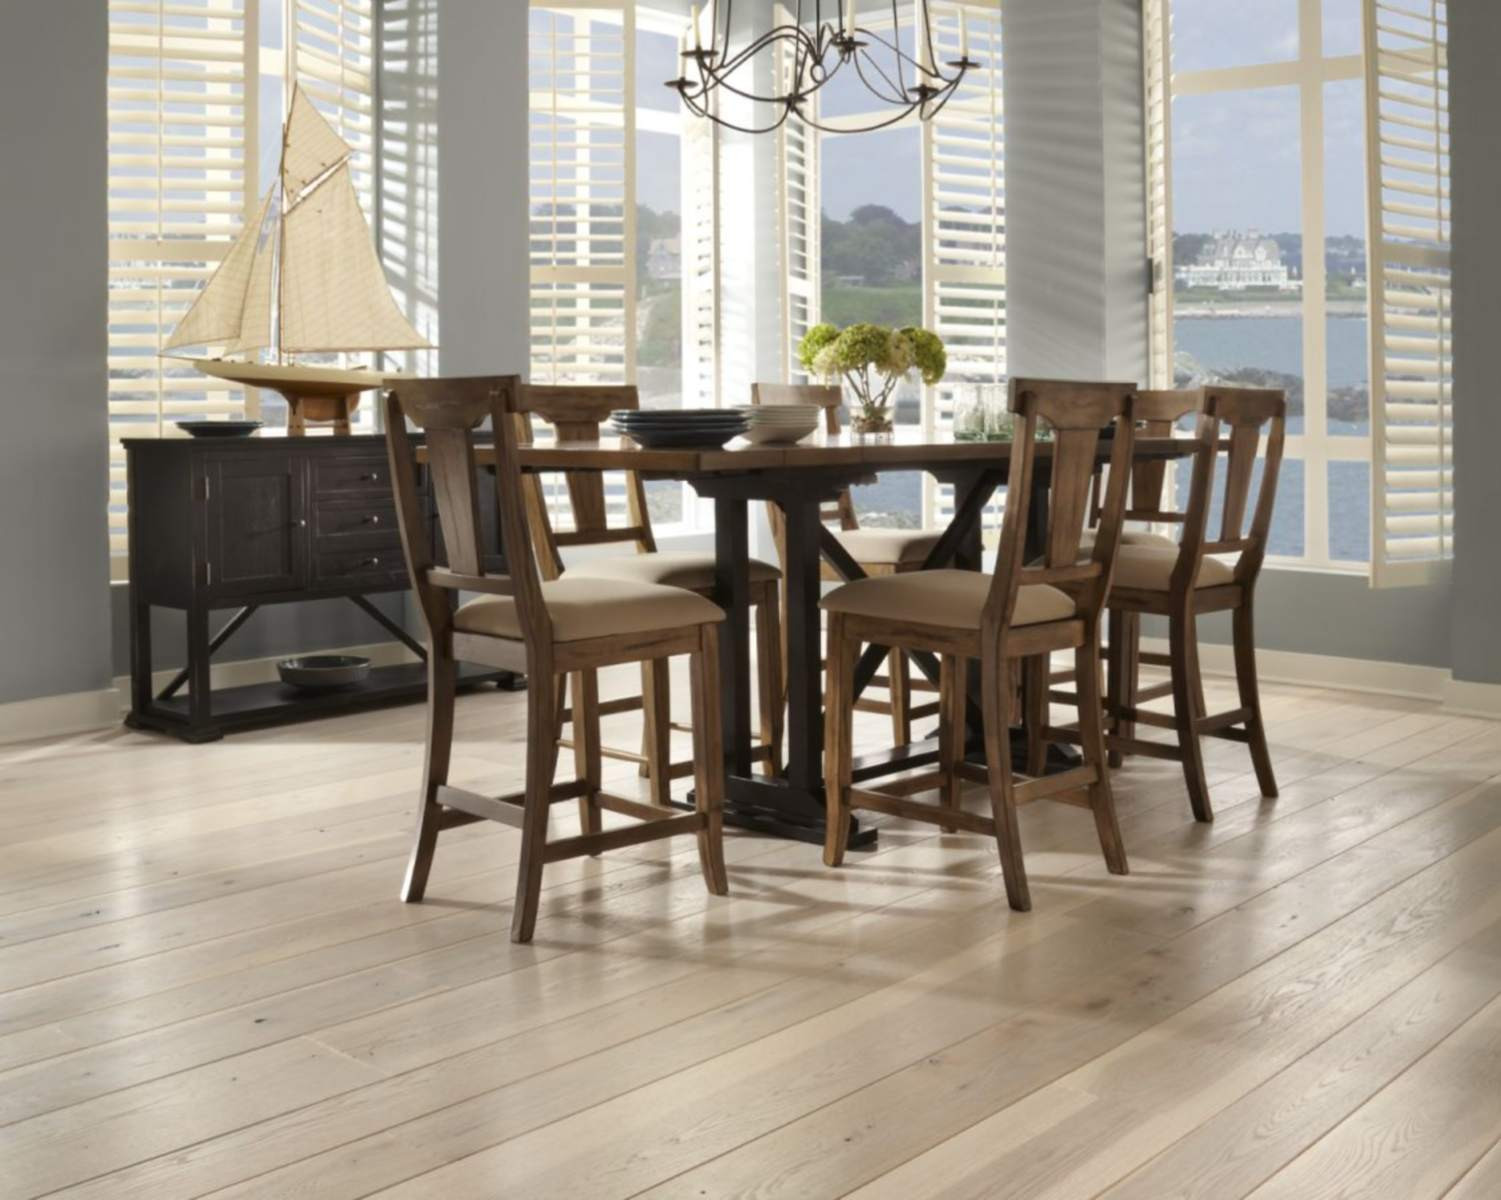 Popular Hardwood Floor Colors 2016 Of top 5 Brands for solid Hardwood Flooring with Regard to A Dining Room with Carlisle Hickorys Wide Plank Flooring